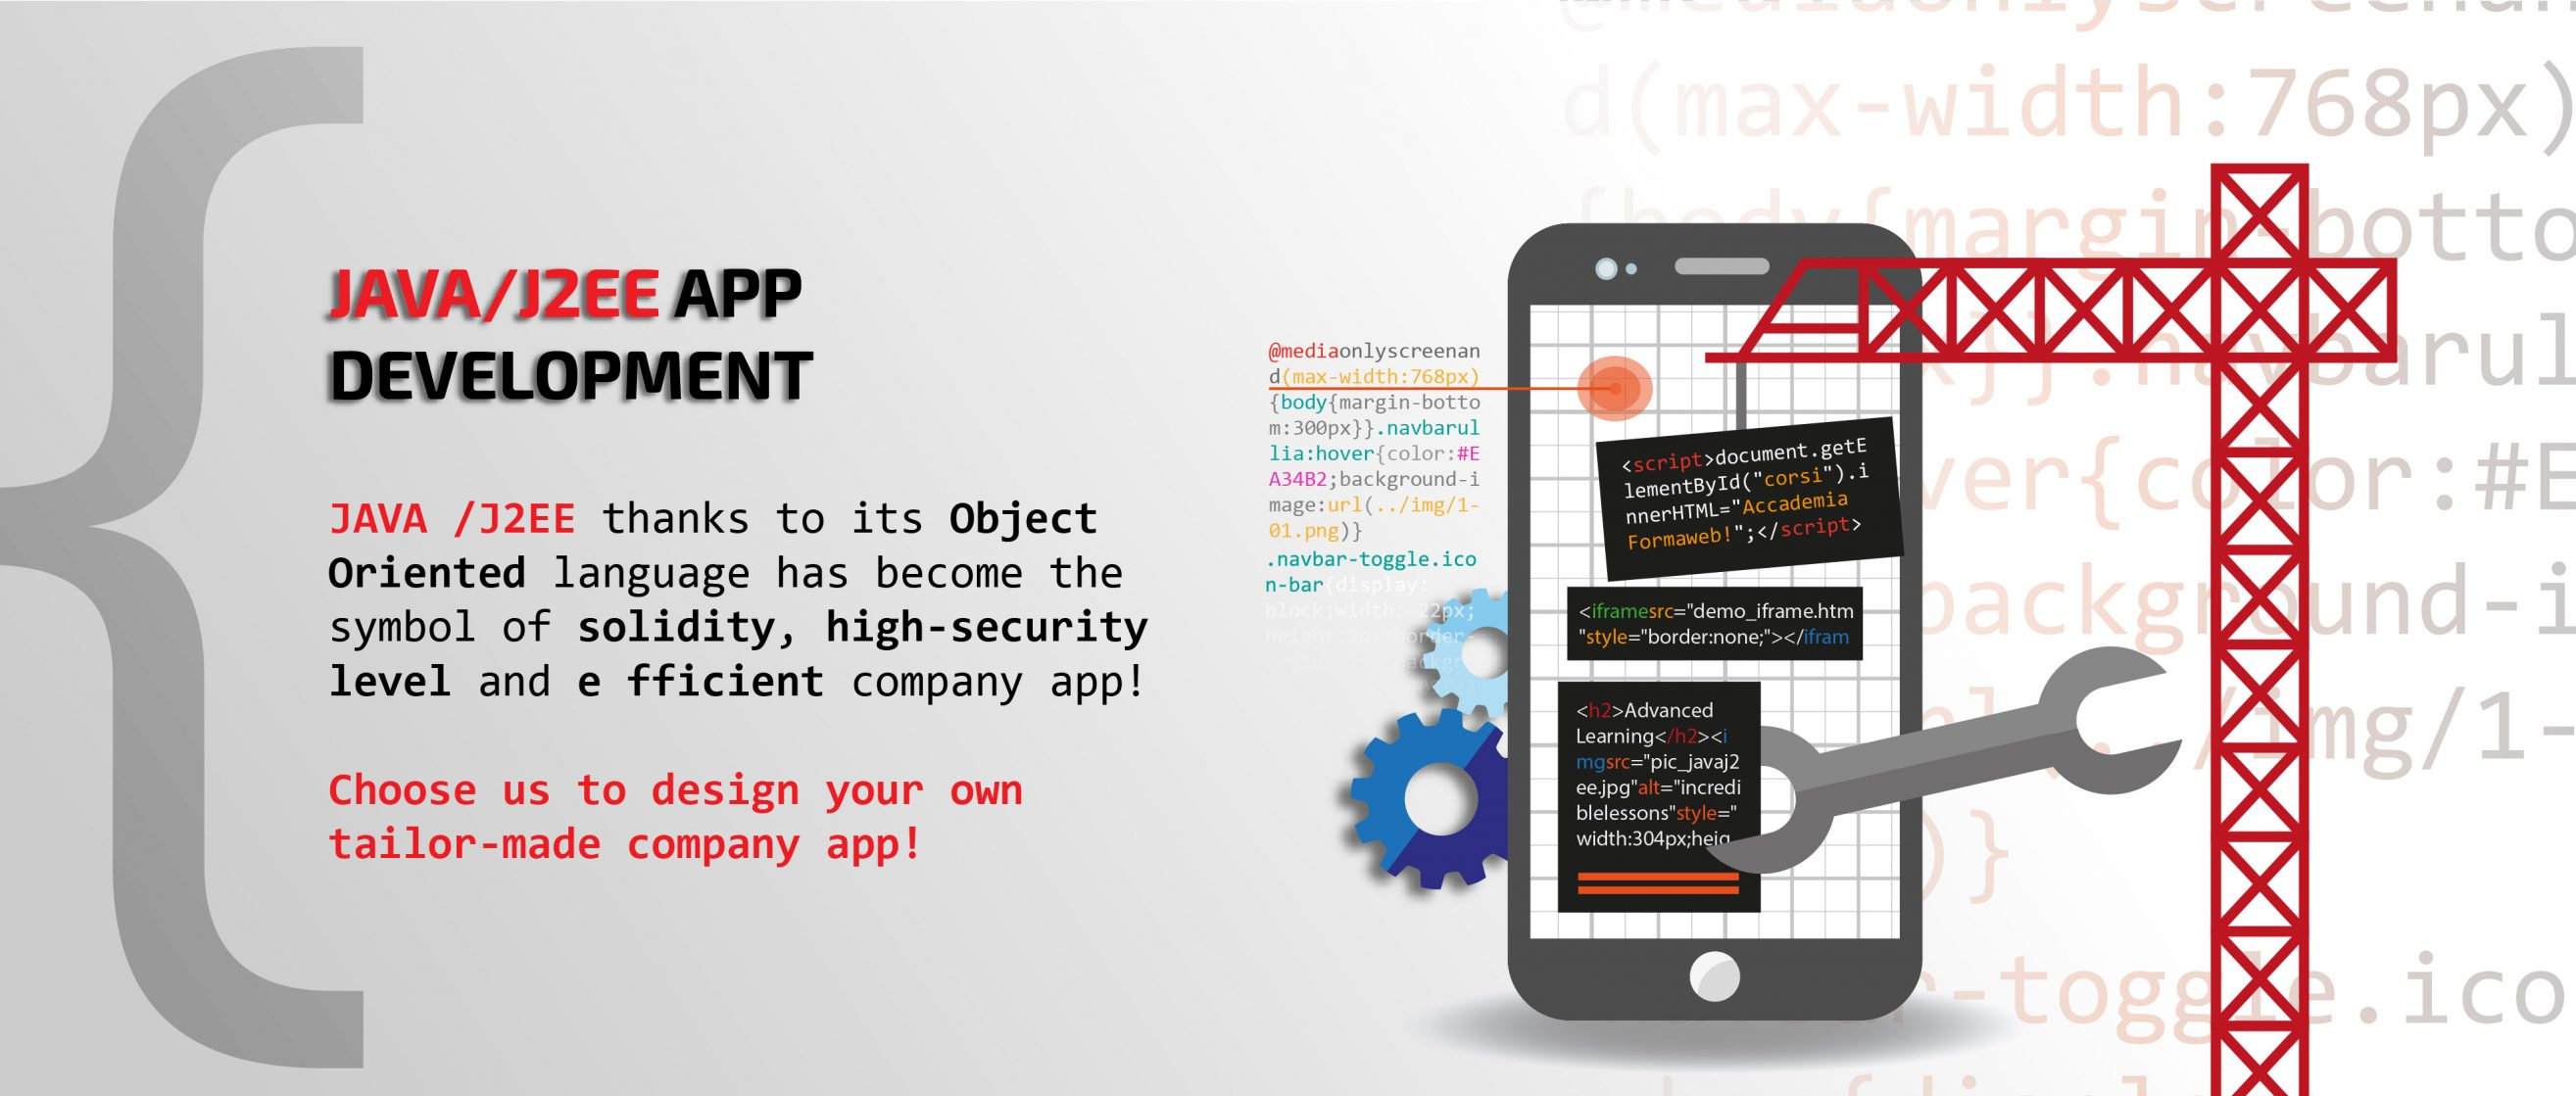 SLIDE LG - JAVA/J2EE APP DEVELOPMENT by TC-WEB